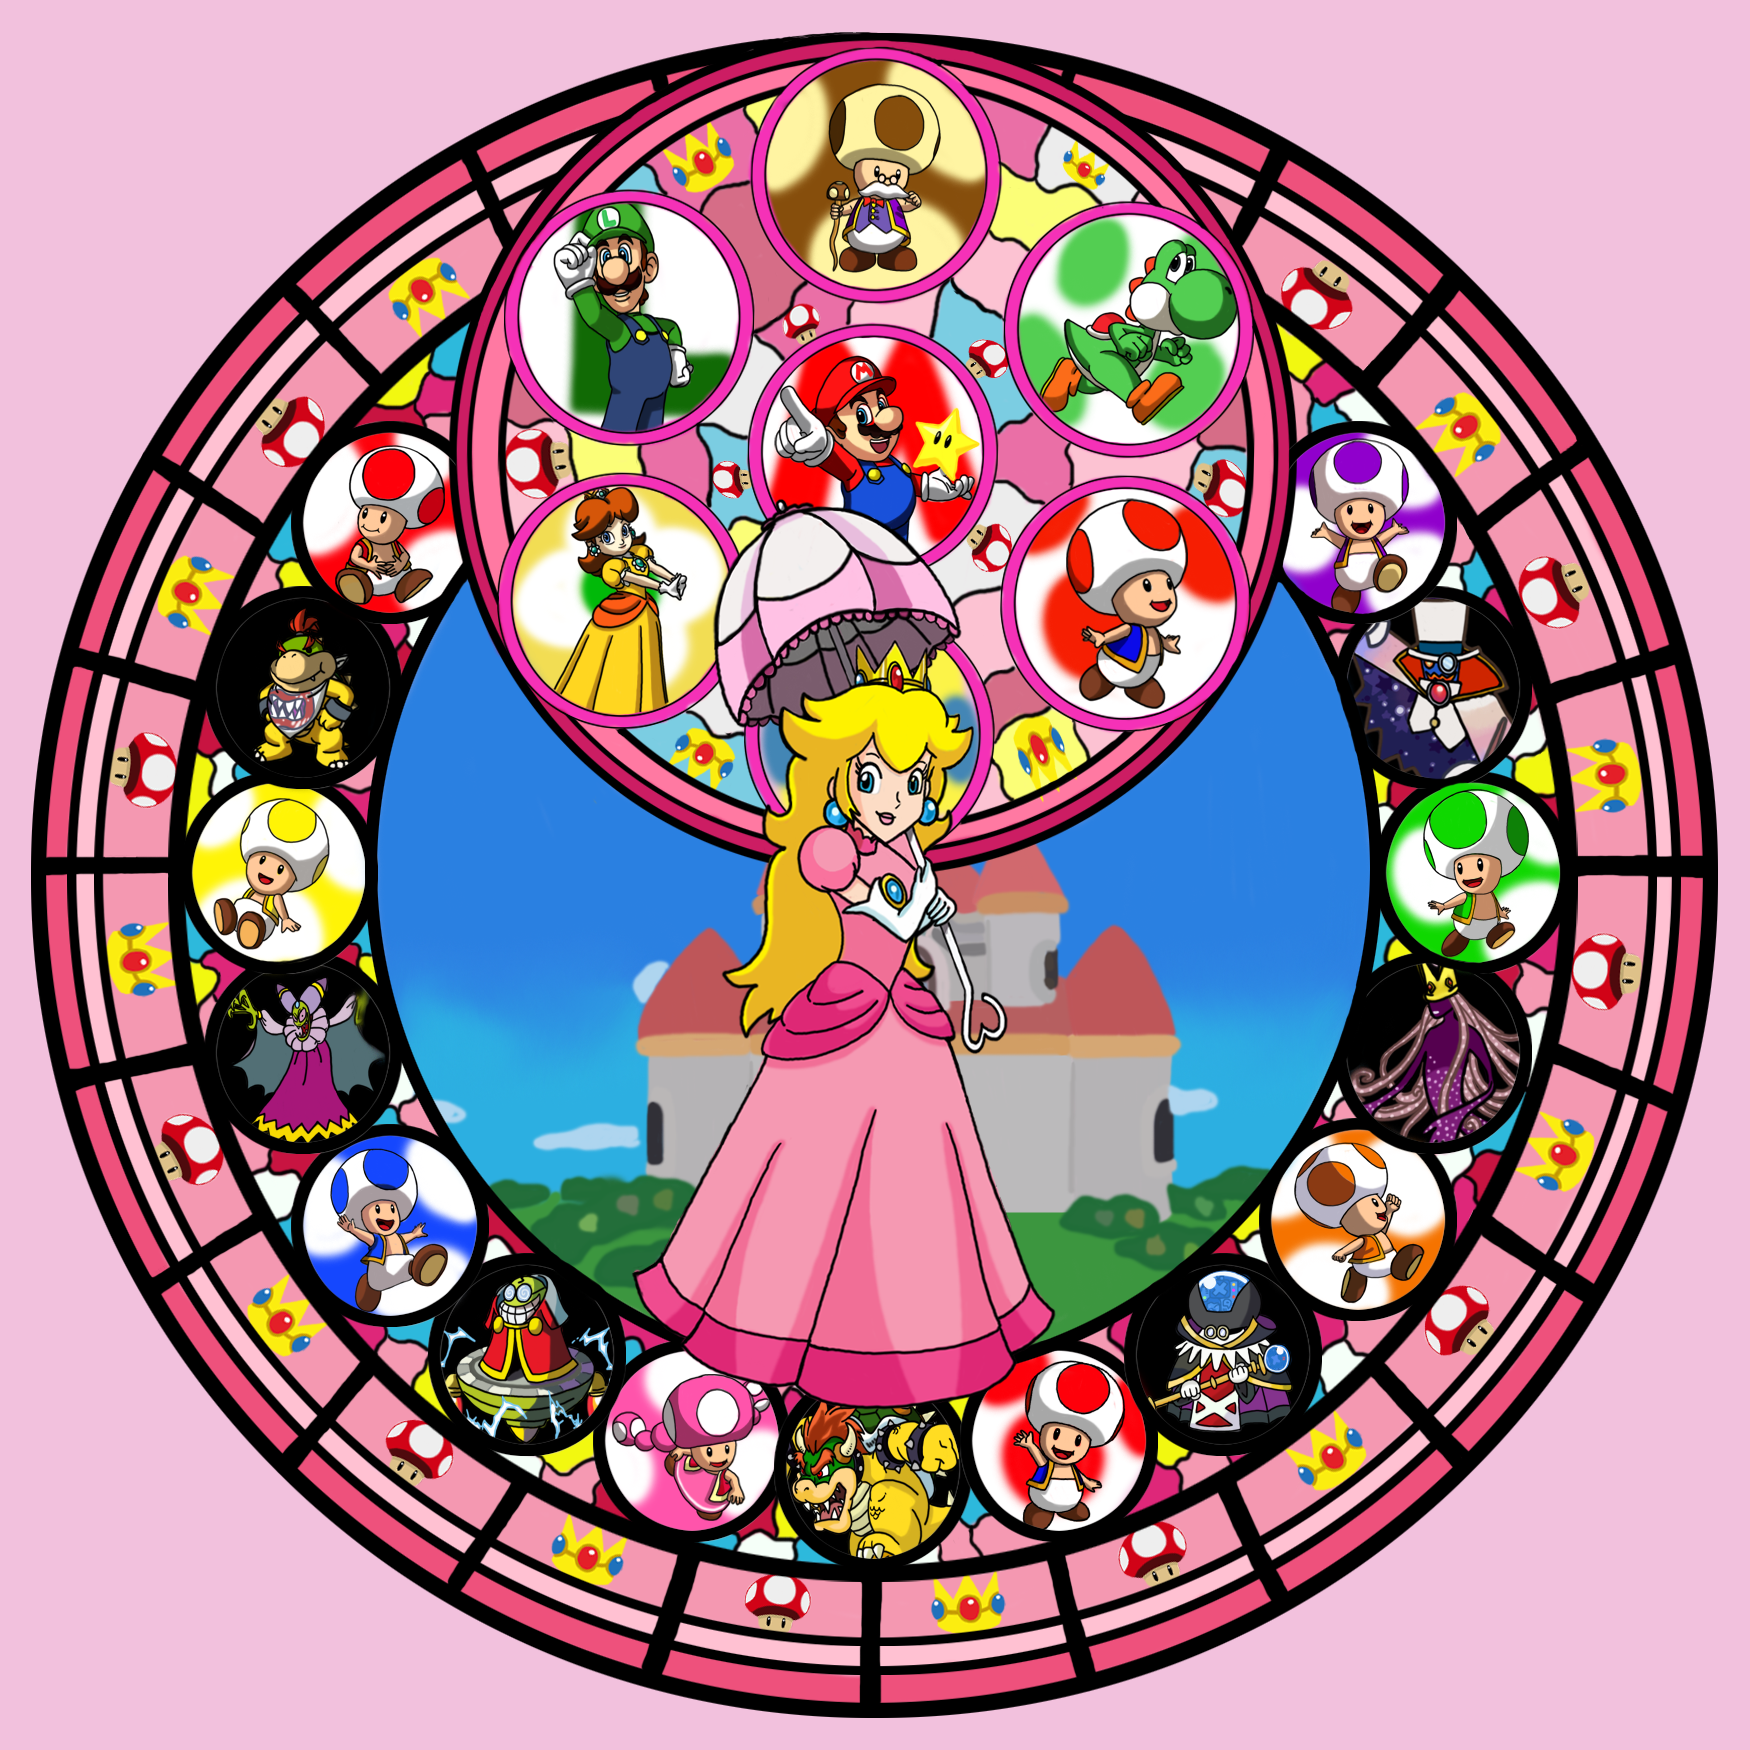 Kingdom hearts clipart stained glass graphic free library Kingdom Hearts Stained Glass by purpleorchid-8863 on DeviantArt graphic free library